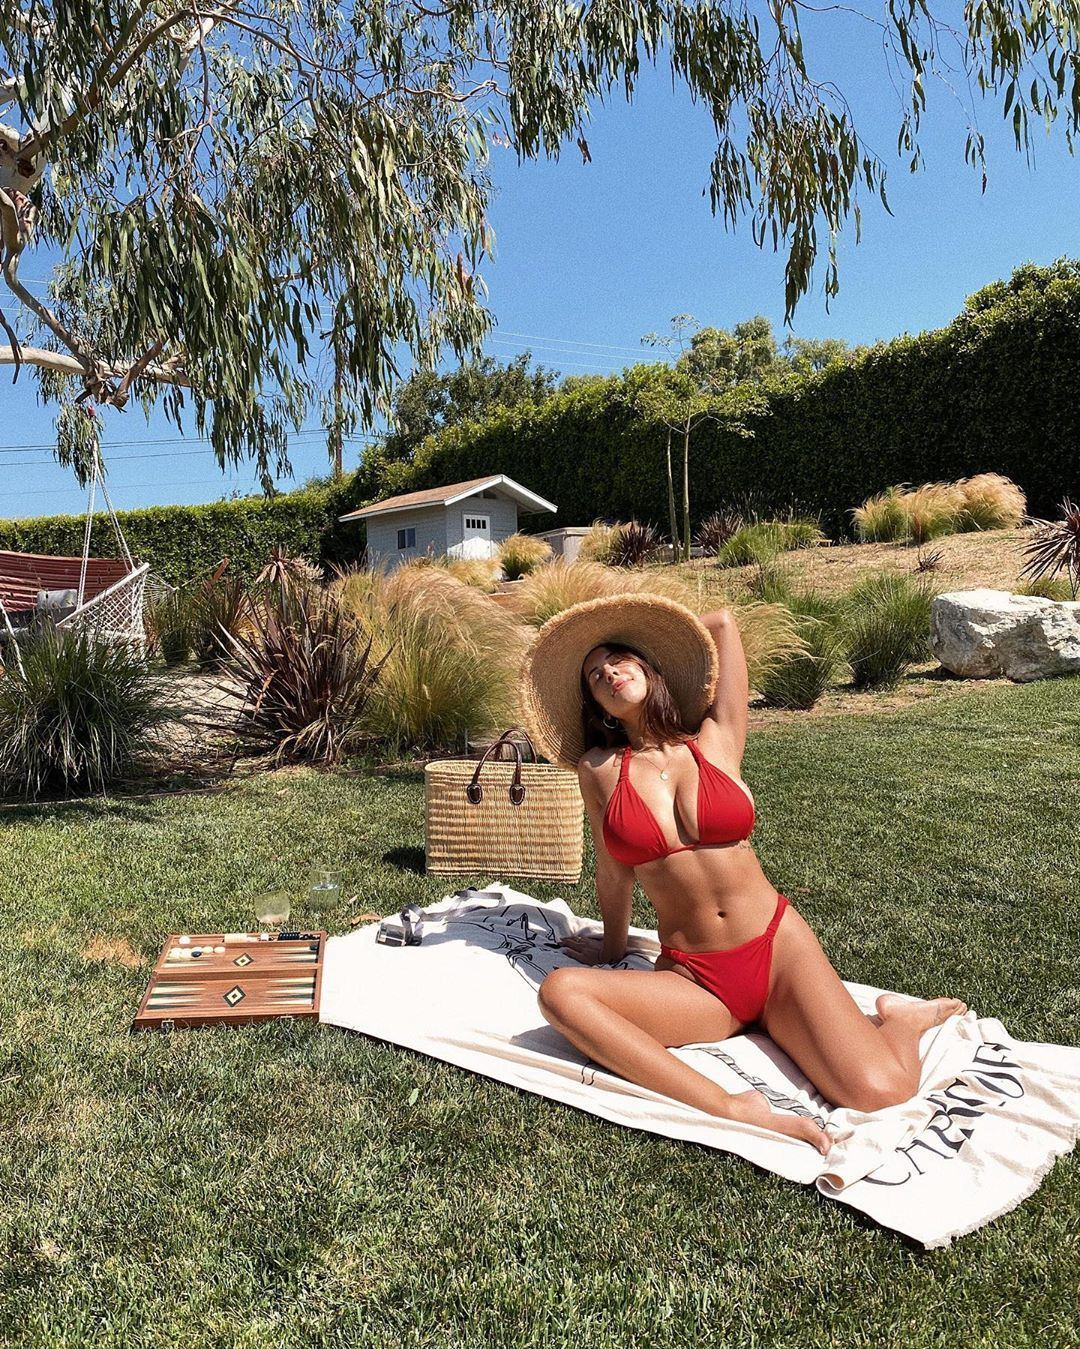 Devin Brugman donning a Plunging paprika red Monday Swimwear bikini top with ruched and spaghetti straps